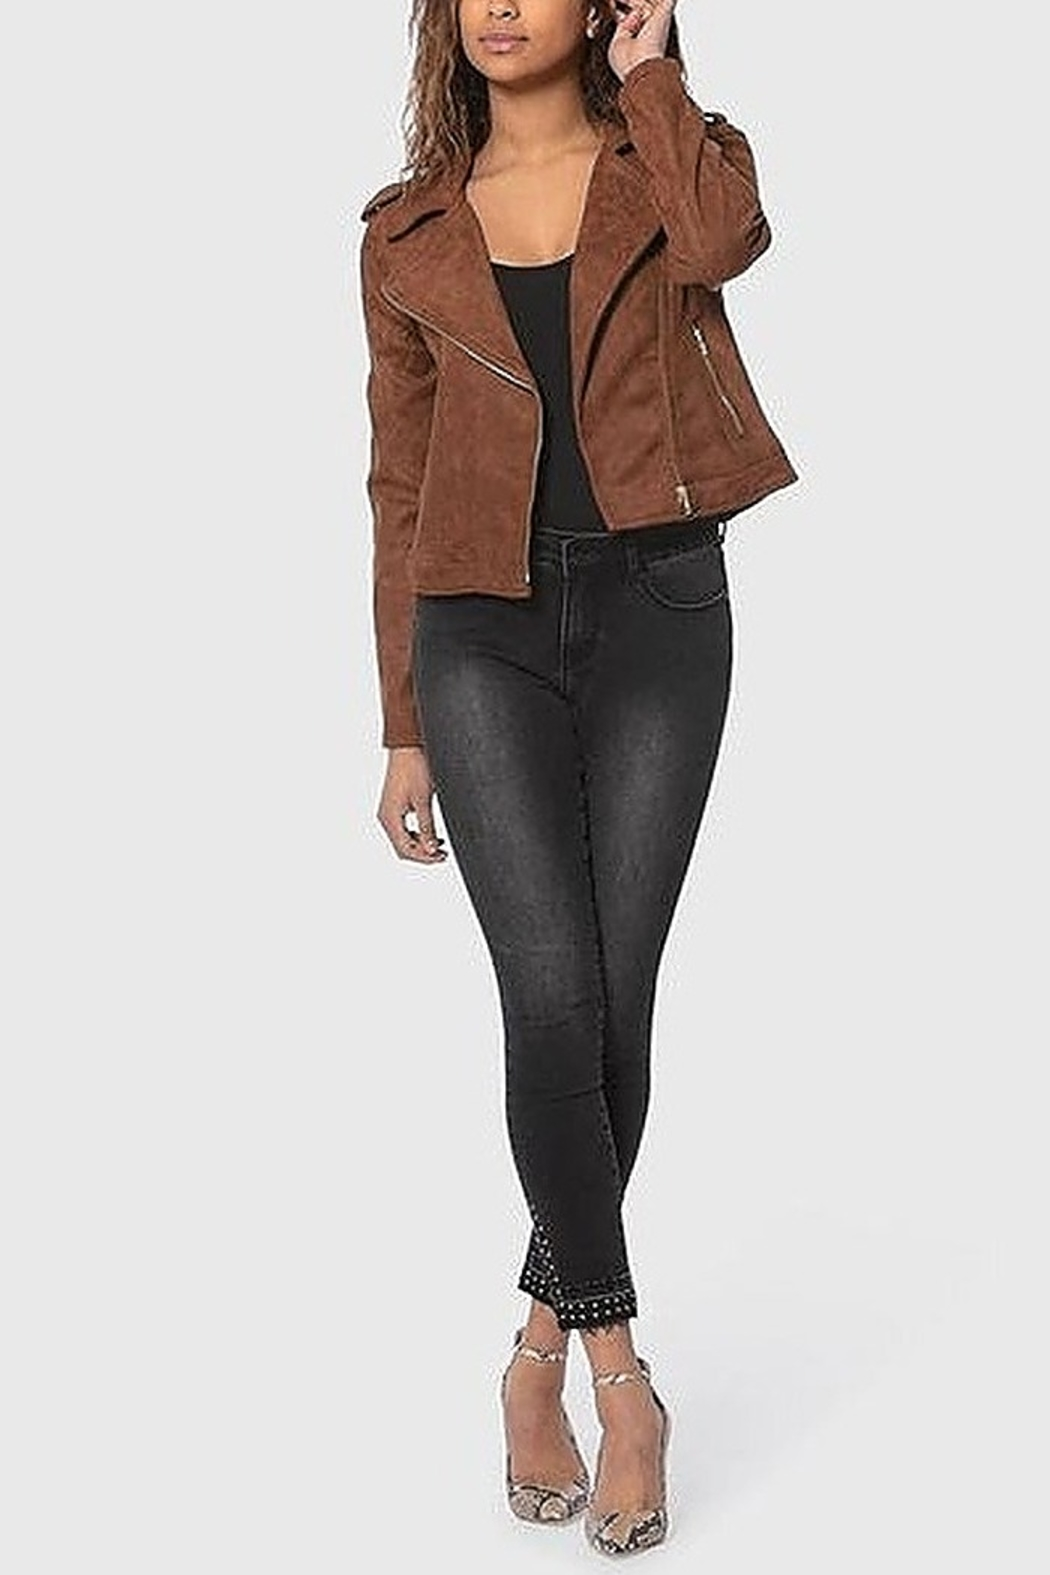 LOLA JEANETTE CLASSIC SUEDE JACKET - Front Cropped Image